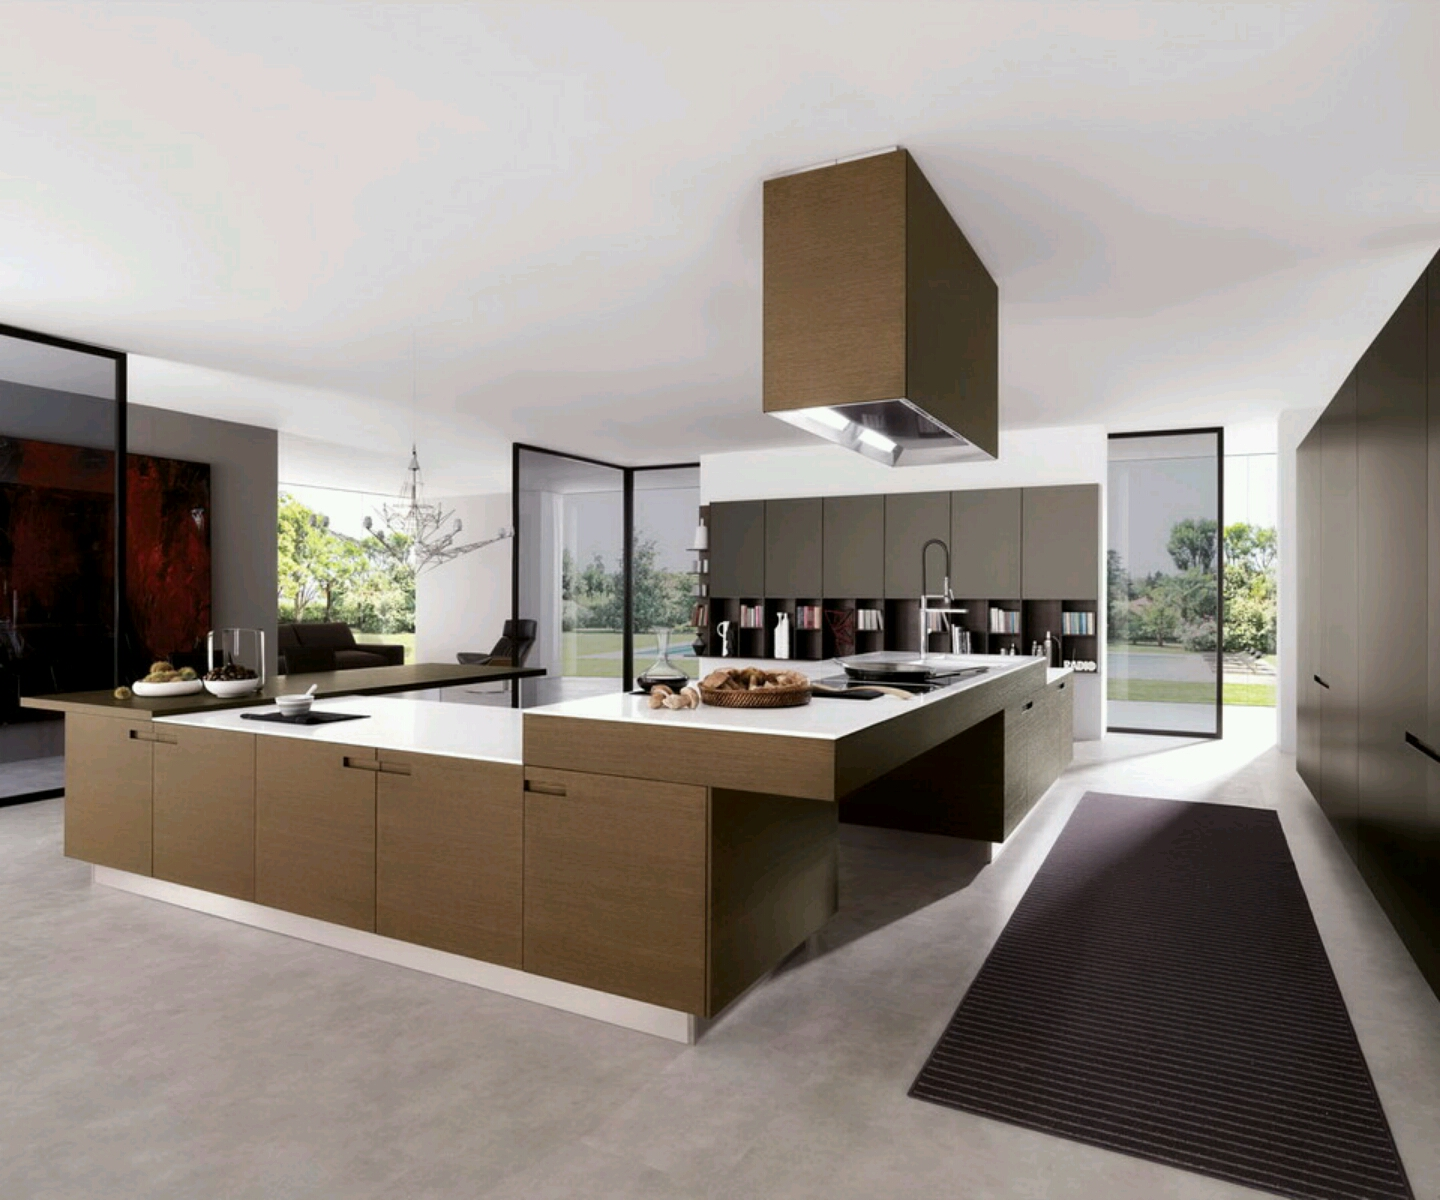 New home designs latest.: Modern kitchen cabinets designs best ideas.